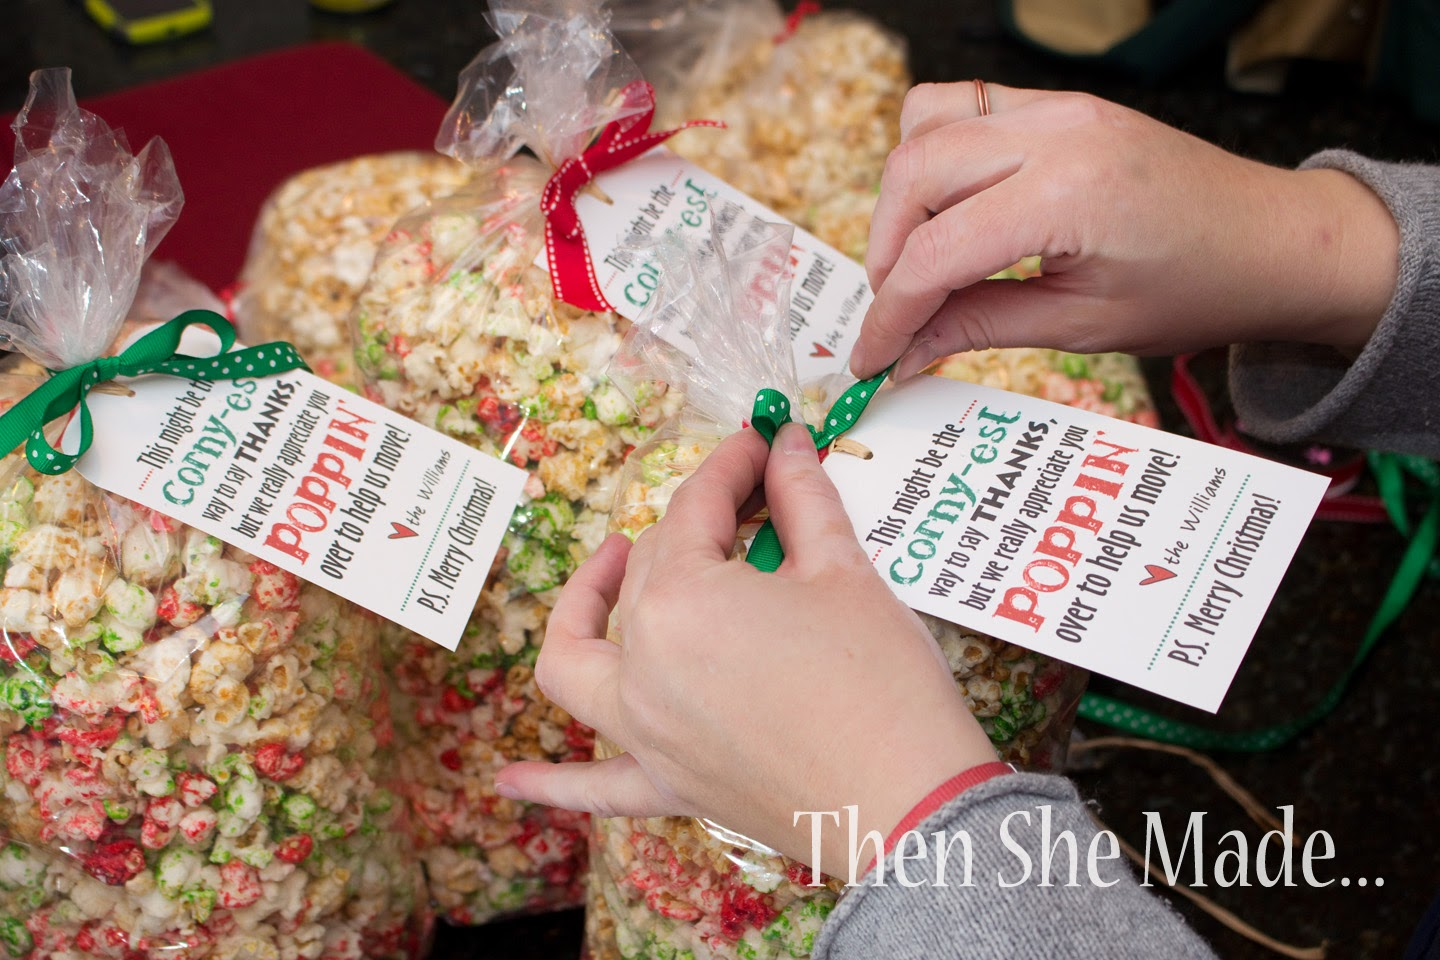 attached the tags using cute ribbon in holiday colors